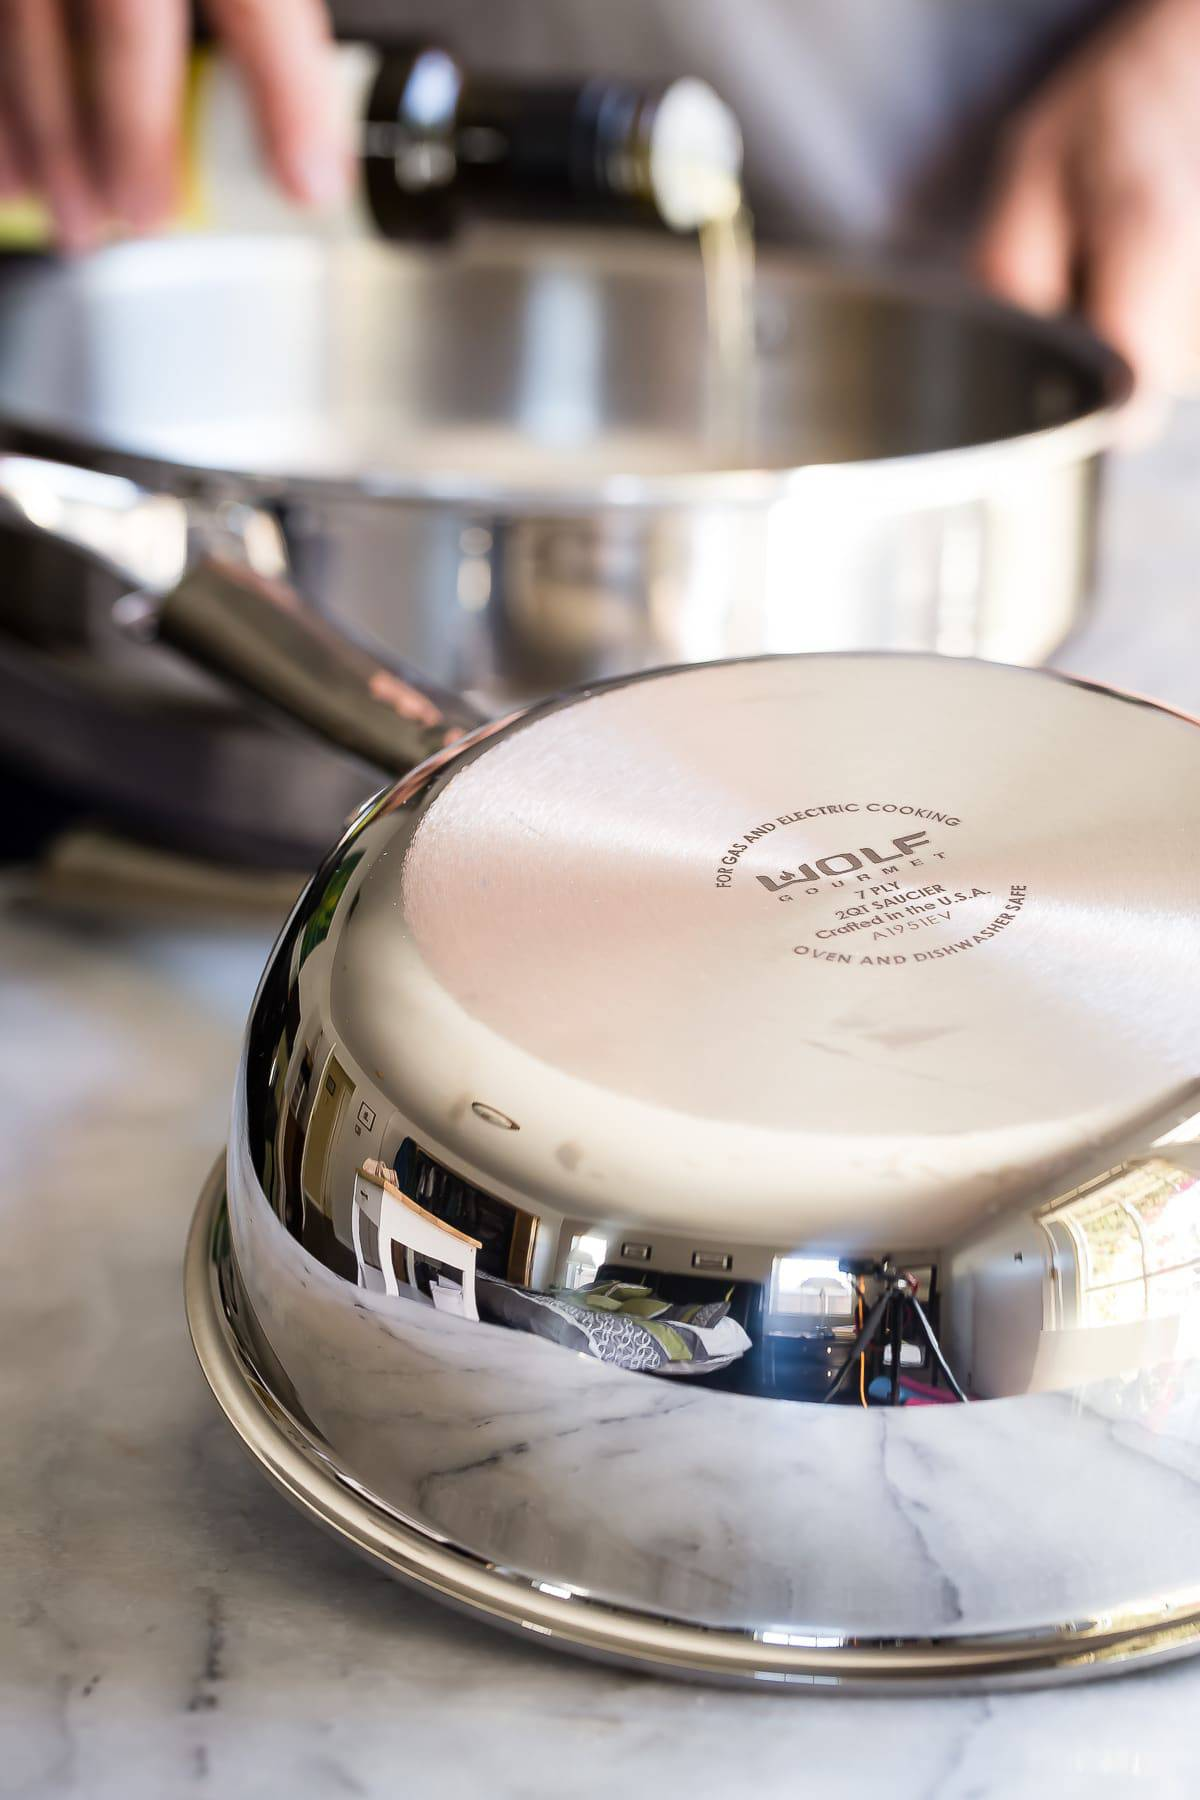 Cooking with brand new Wolf Gourmet pans